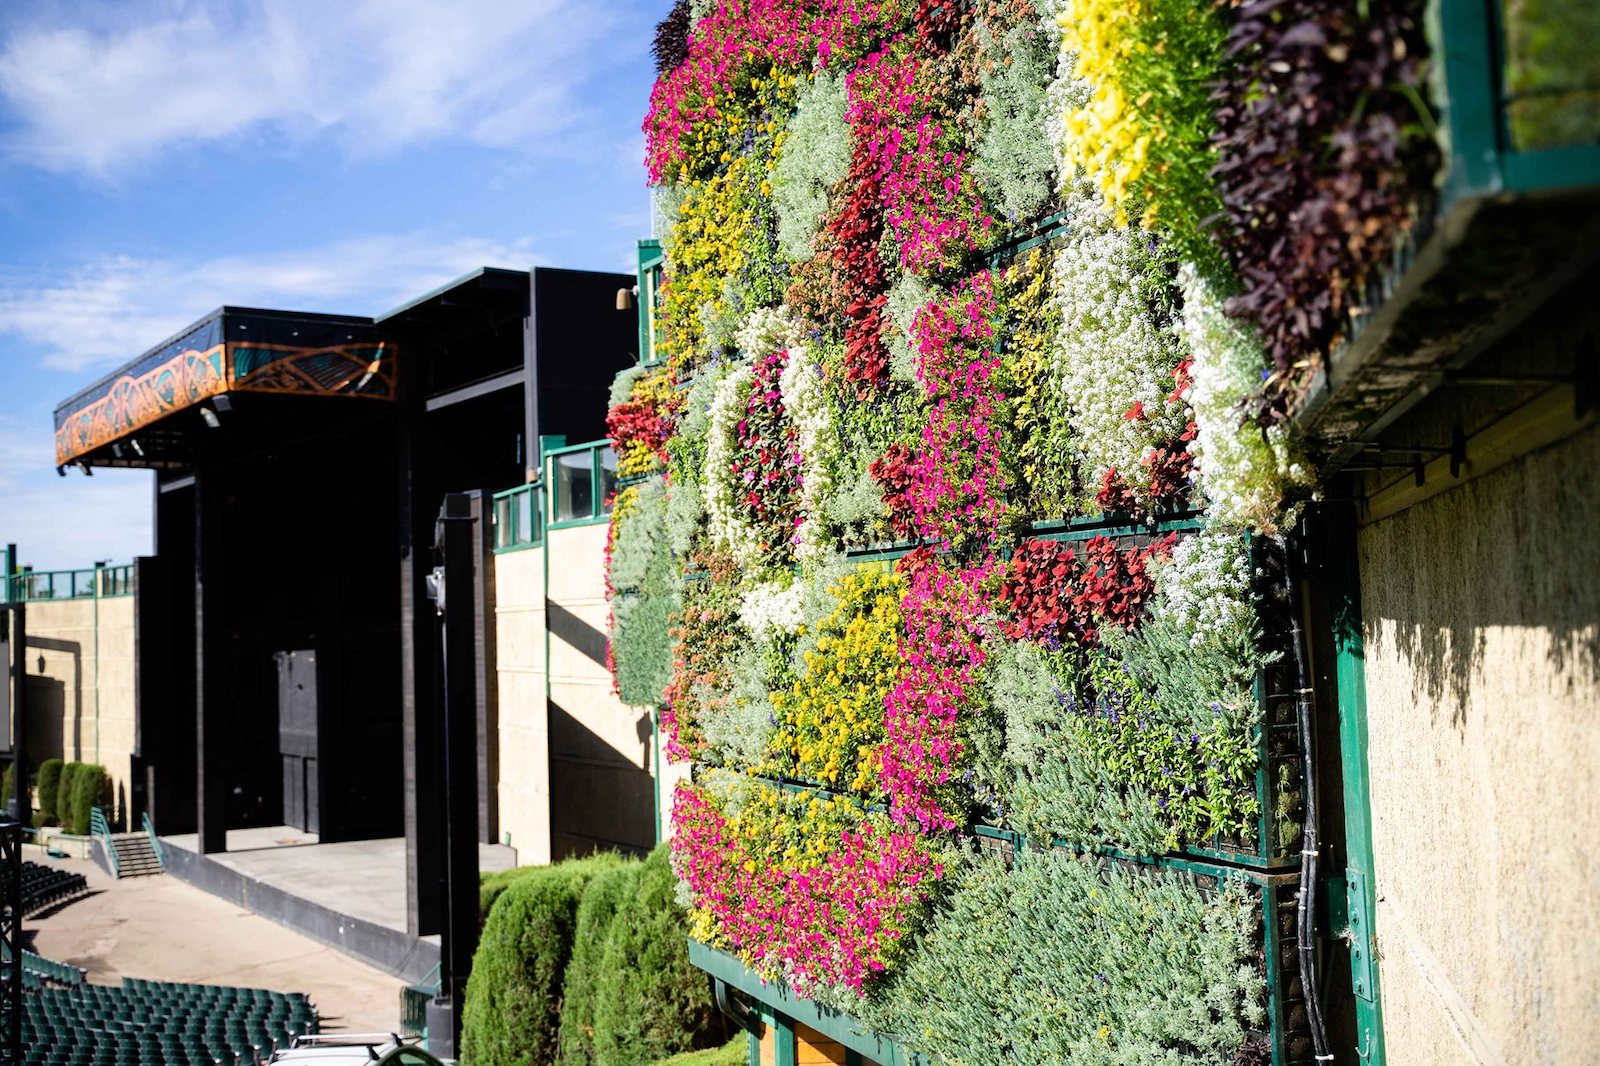 """Image of the """"living wall"""" of plants at Fiddler's Green Amphitheatre in Greenwood, Colorado"""